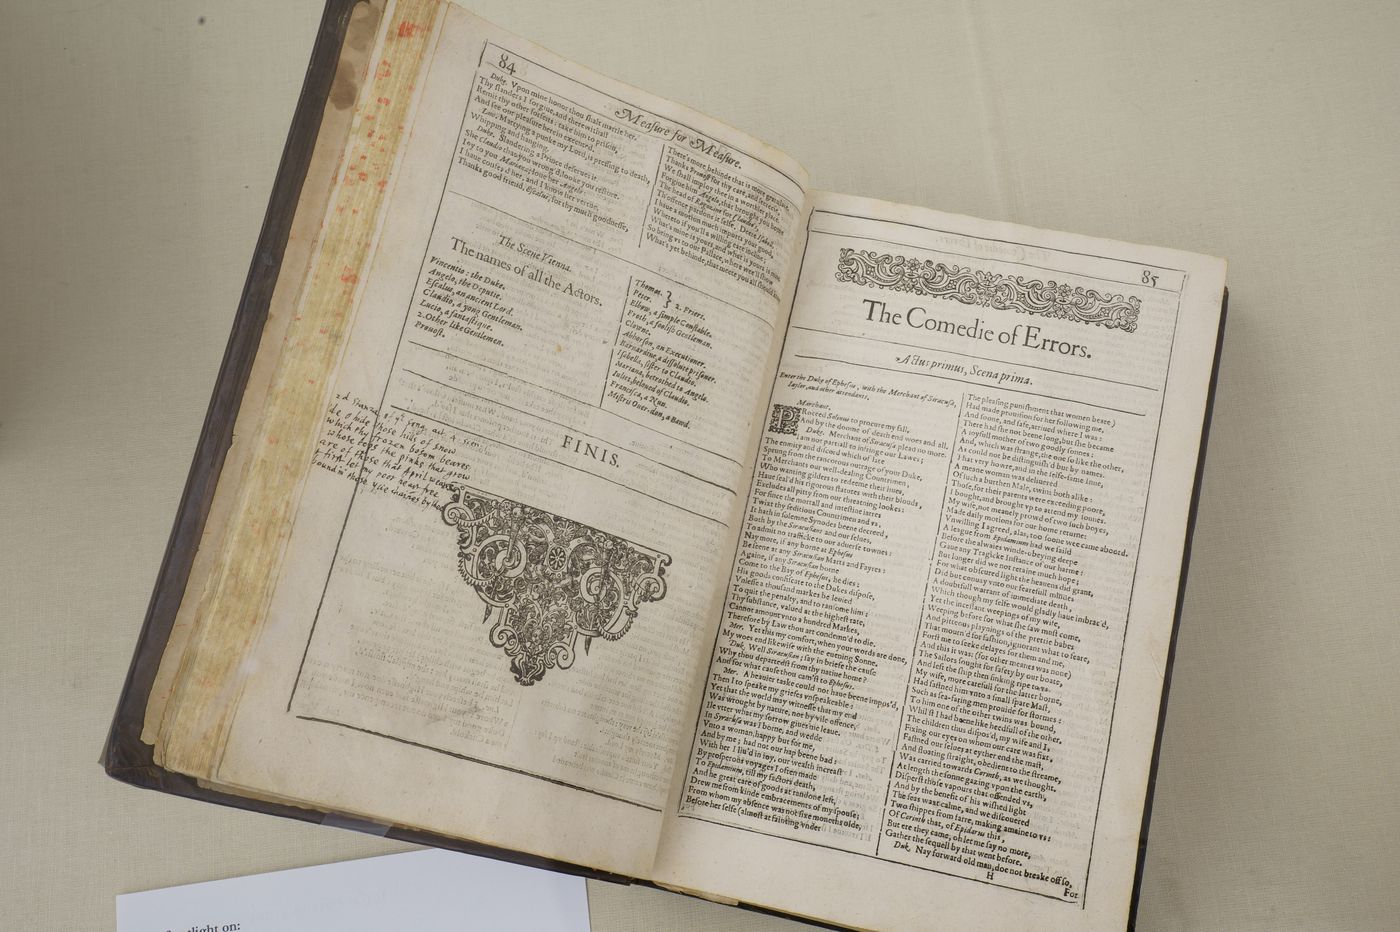 A rare Shakespeare First Folio annotated by John Milton hid in Free Library of Philadelphia for 75 years